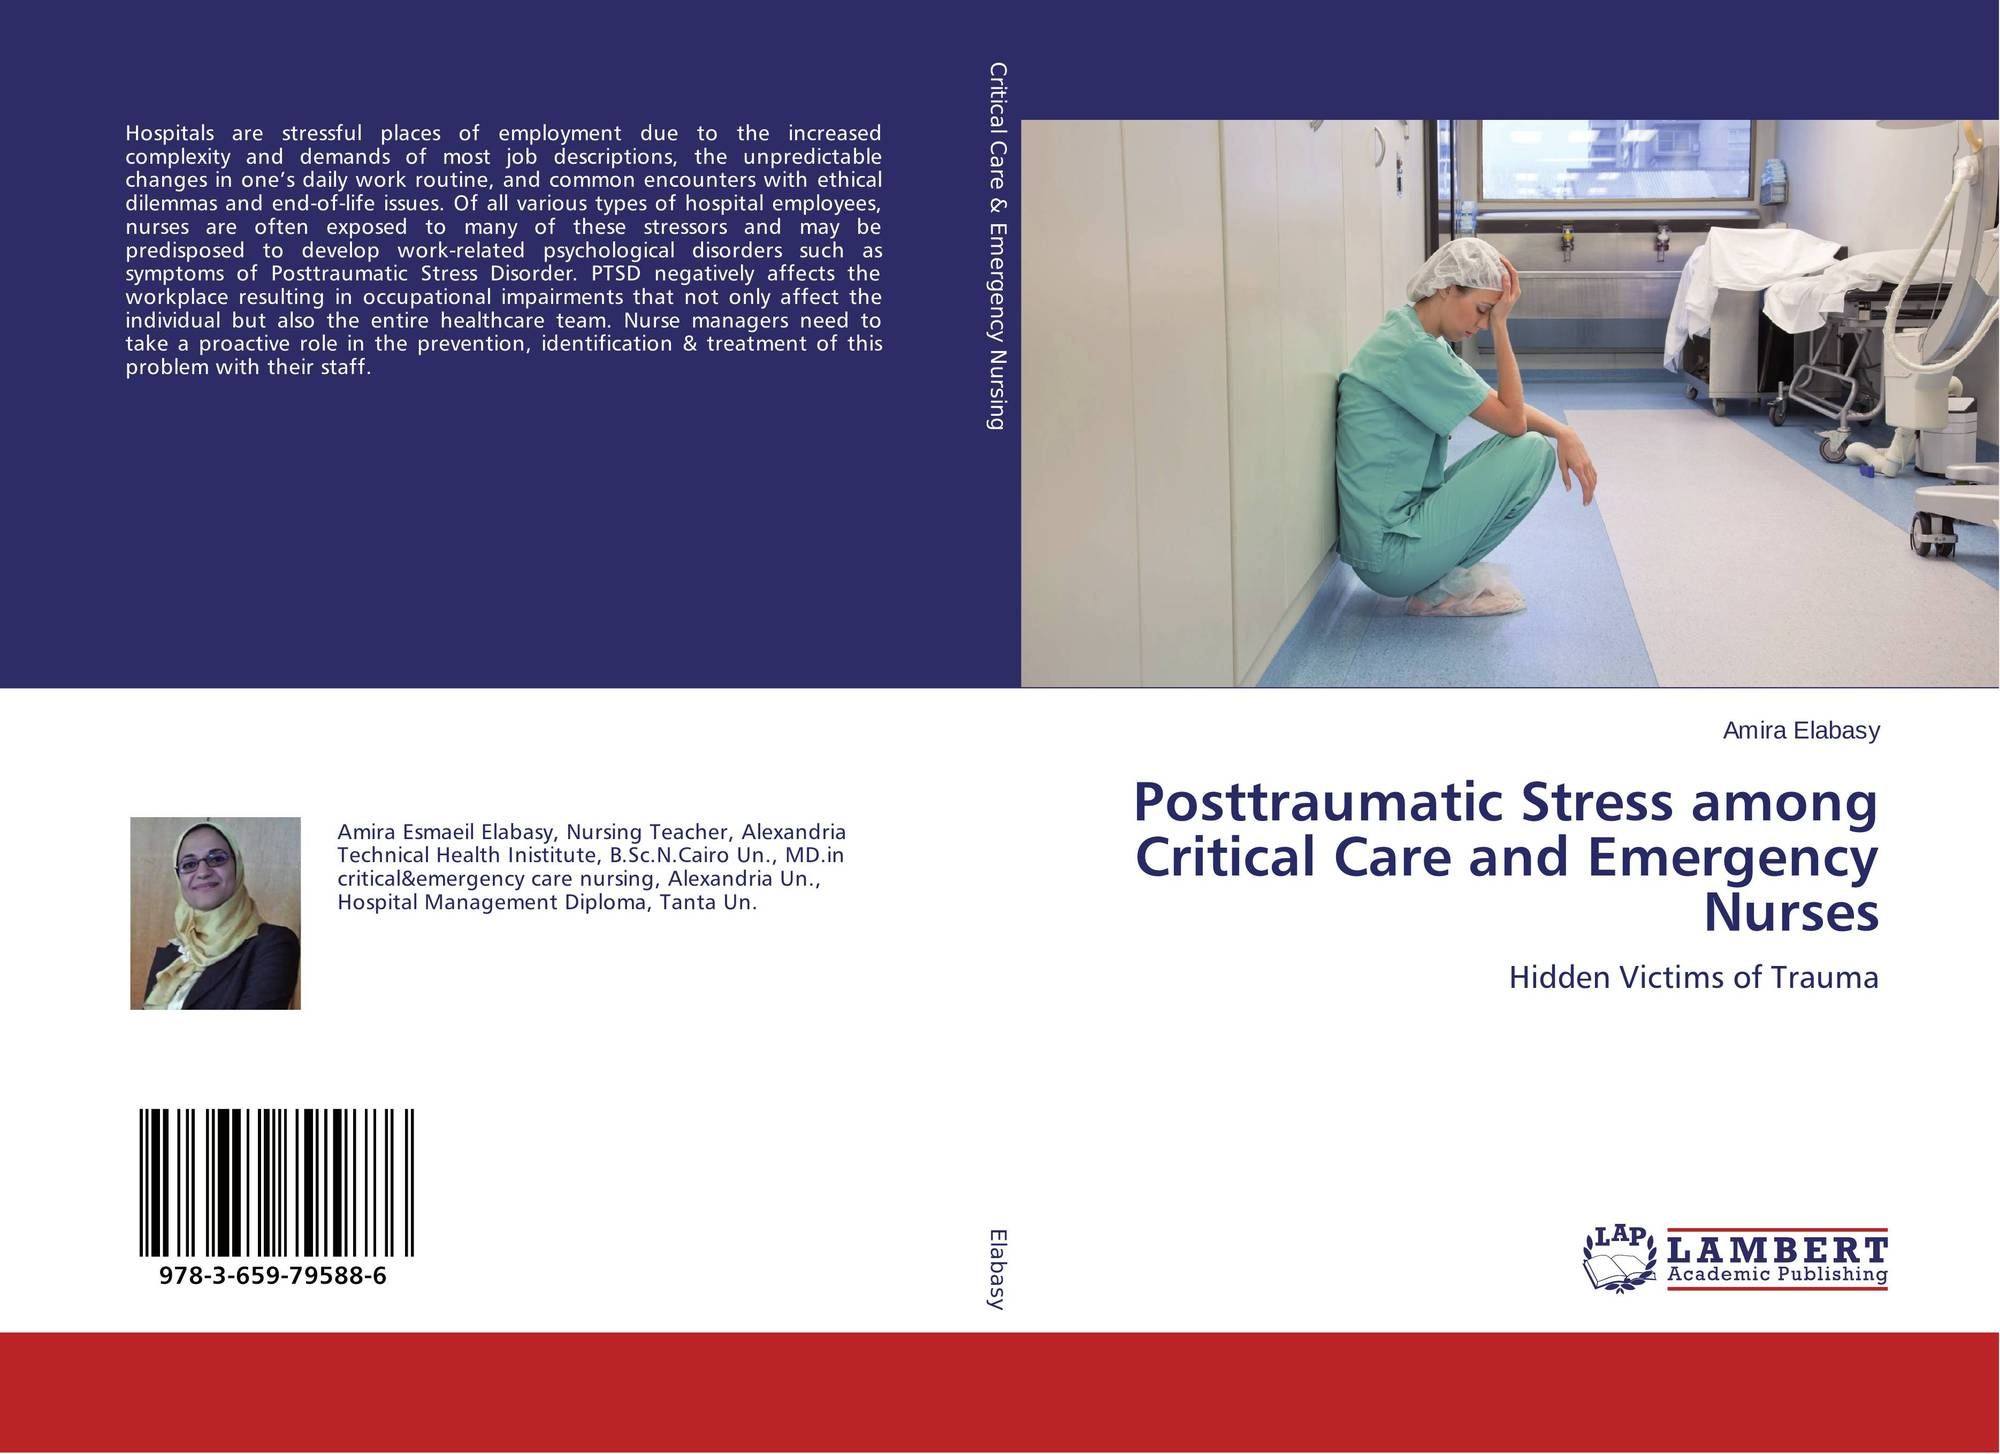 occupational stress of nurses Further reproduction prohibited without permission abstract occupational stress among nurse administrators title of grant or project occupational stress among nurse administrators in general hospitals in tennessee_ principal investigator ruby tweed d a.